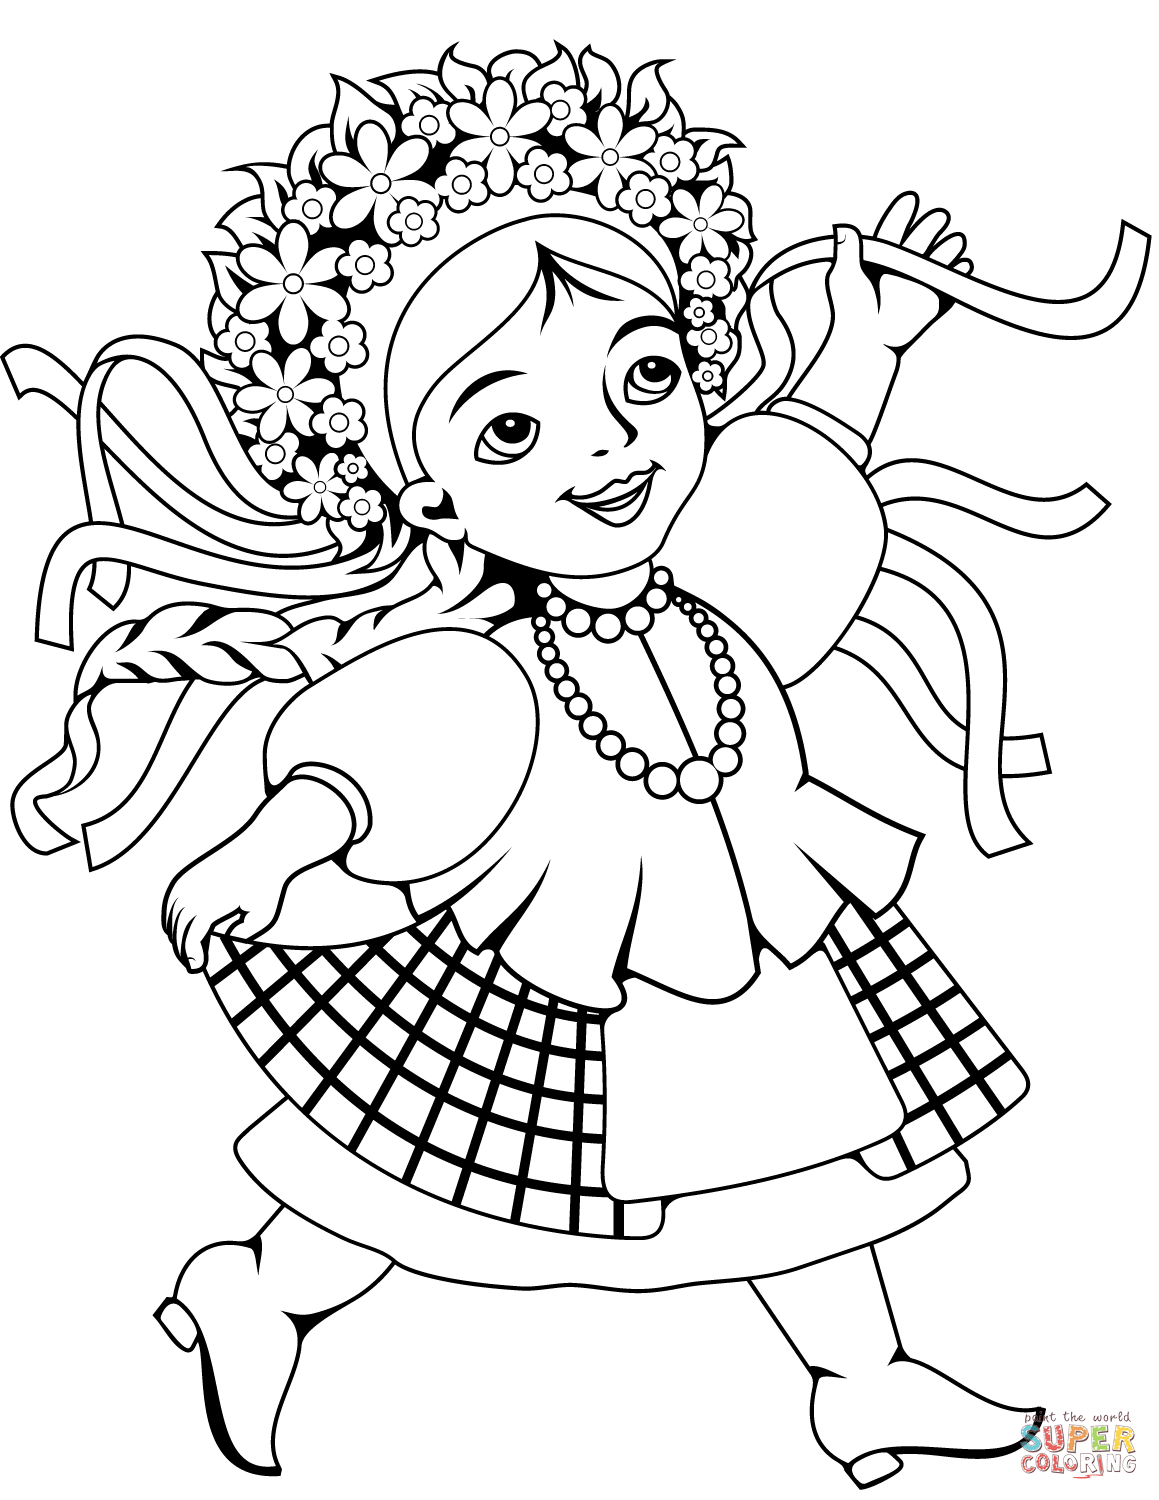 Ukrainian Woman Coloring Page Free Printable Coloring Pages Coloring Pages Christmas Coloring Pages Ukrainian Christmas